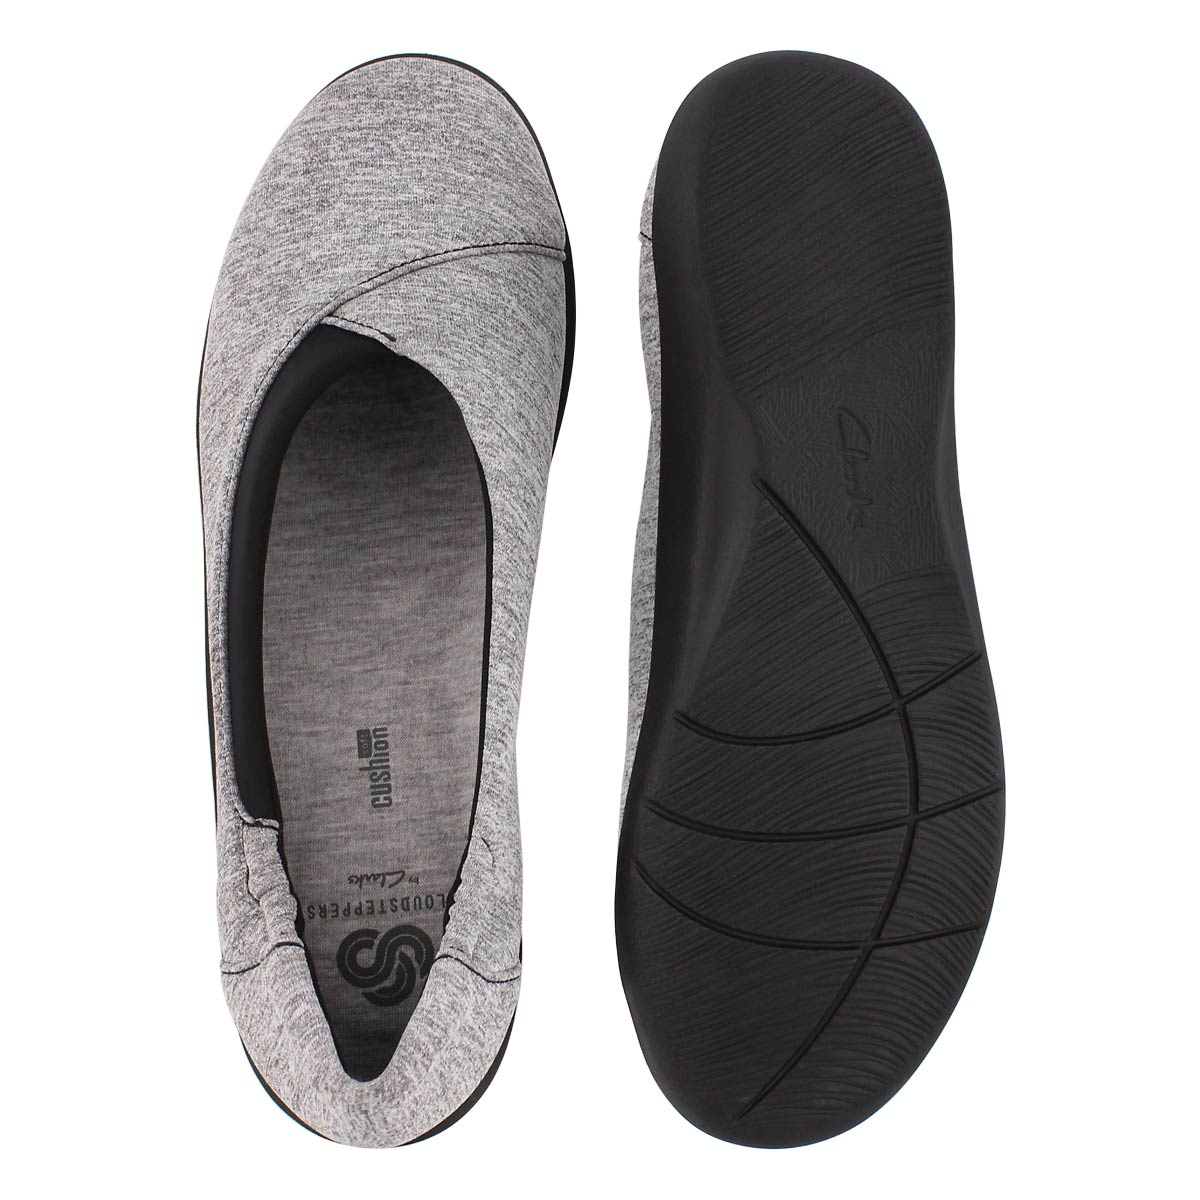 Lds Sillian Jetay grey casual slip on